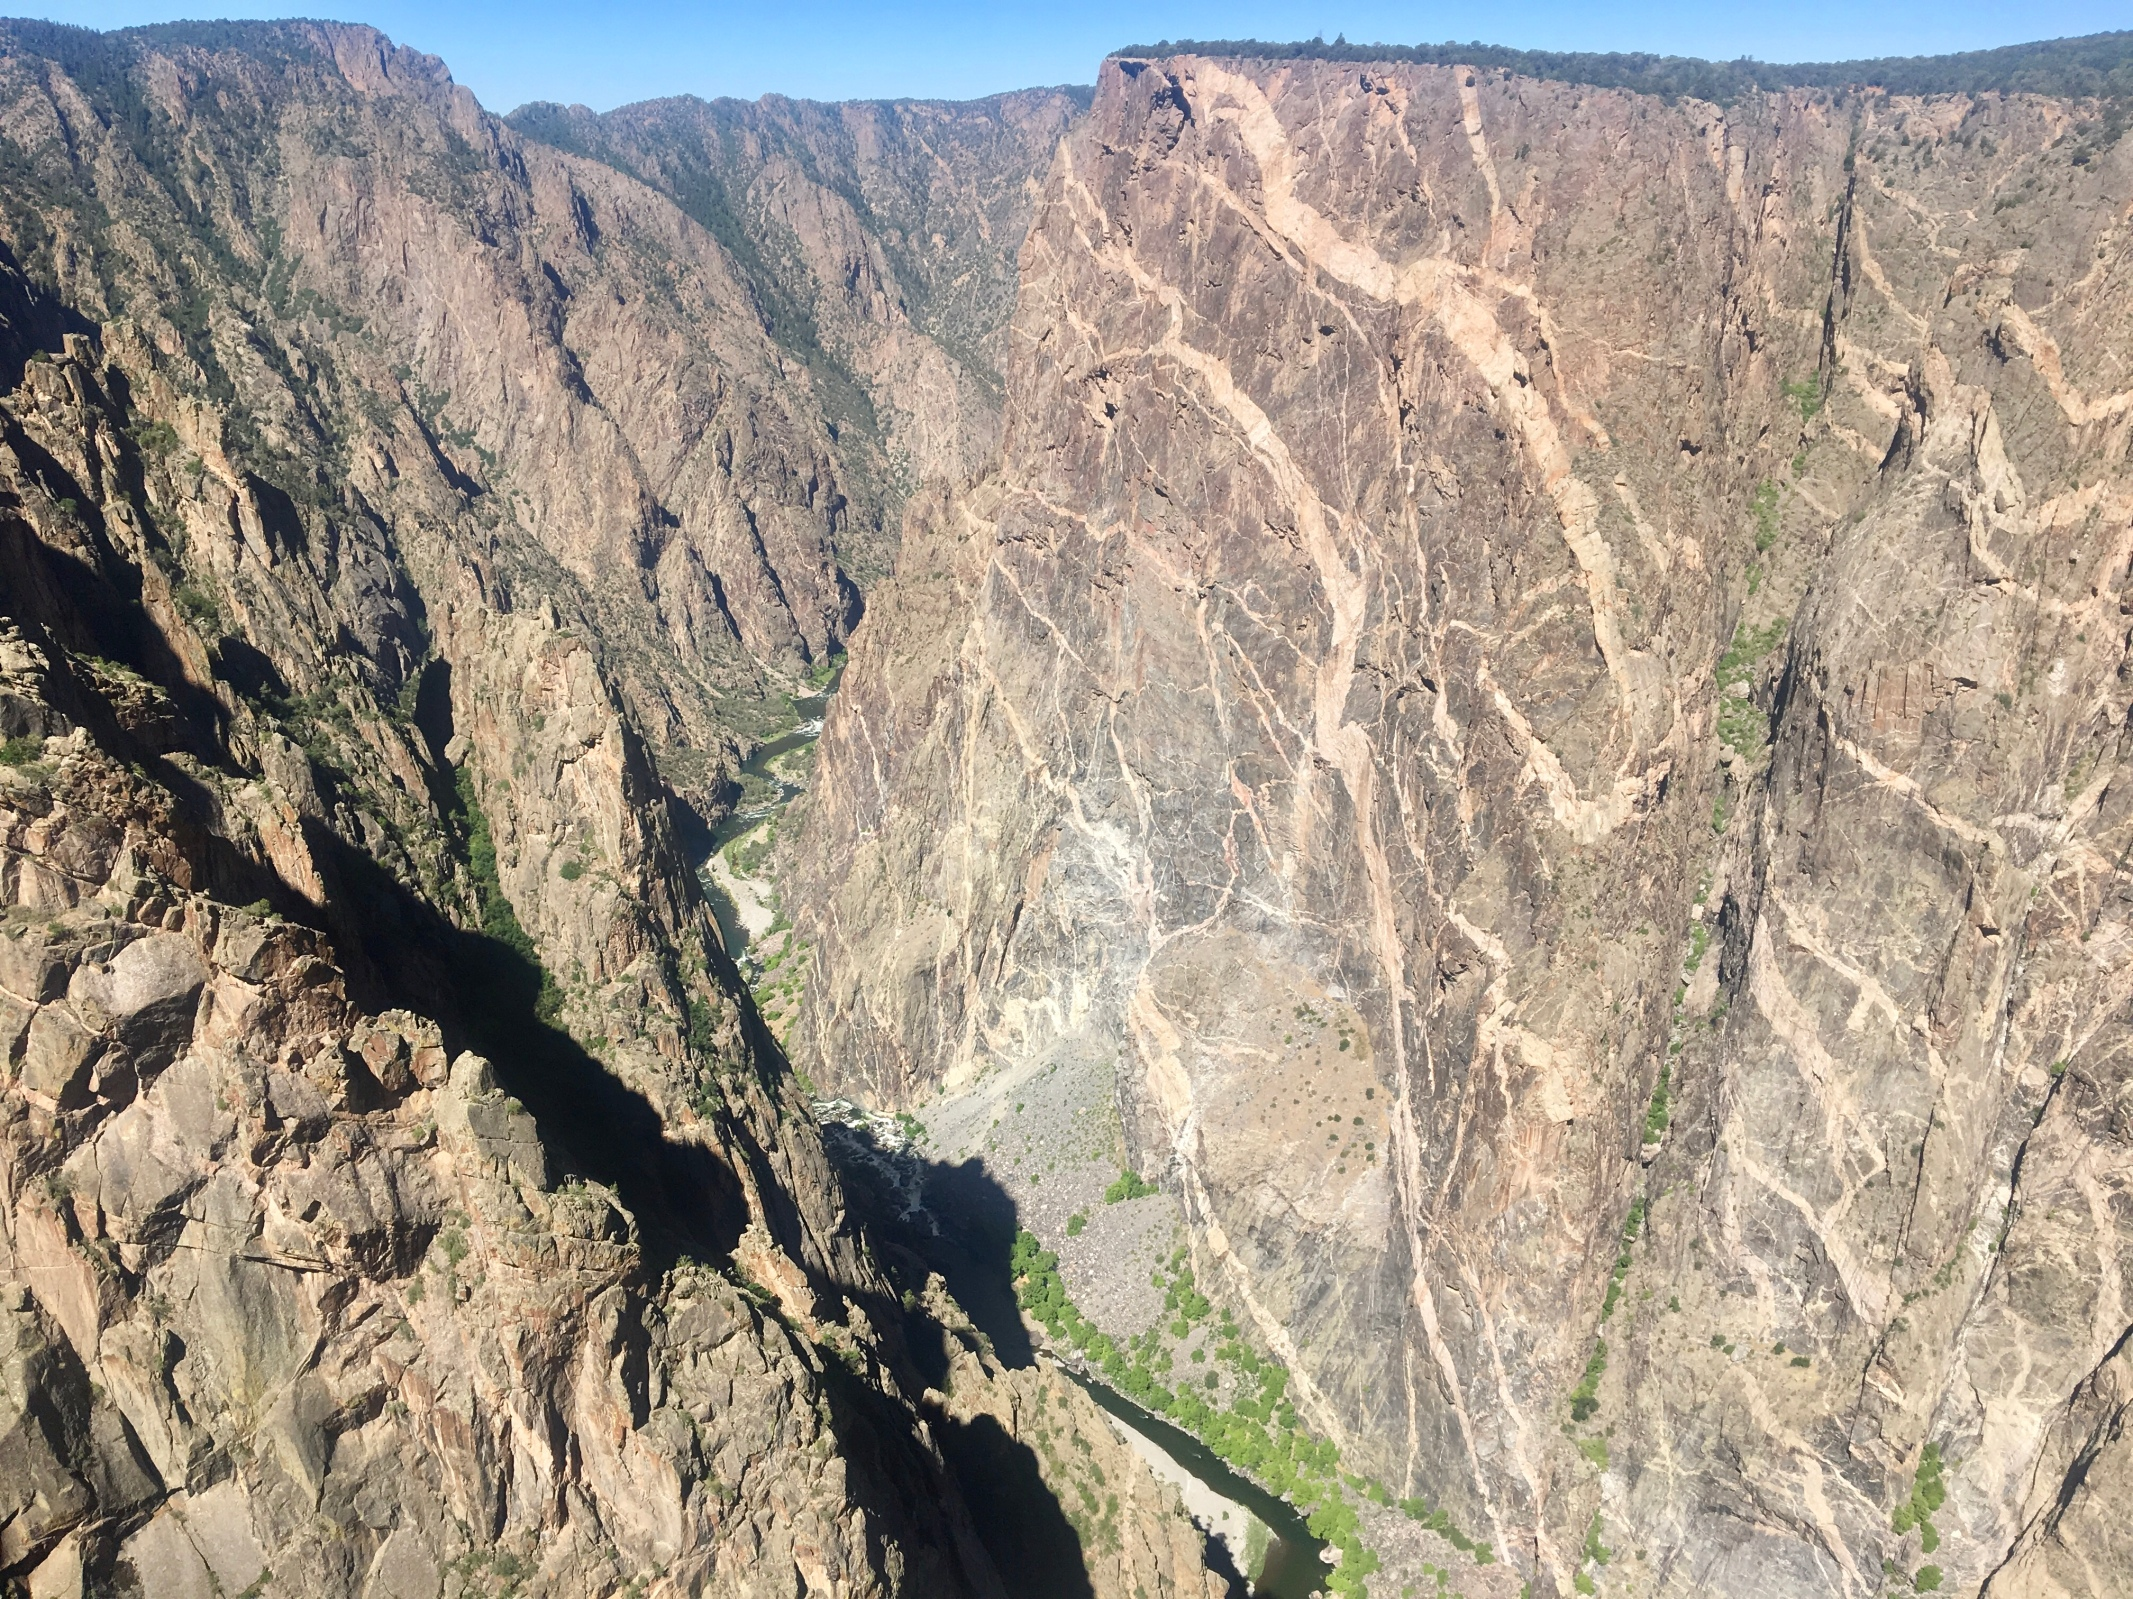 The Painted Wall in Black Canyon of the Gunnison National Park. In 2017, the park used Land and Water Conservation Fund support to purchase 2,494 acres of land that allowed for better access to the park. The reauthorization of the fund moved out of committee and to the U.S. House floor on Thursday, only 17 days before it is set to expire, promising a vote that could keep the 64-year-old fund alive. (Jason Blevins, The Colorado Sun)